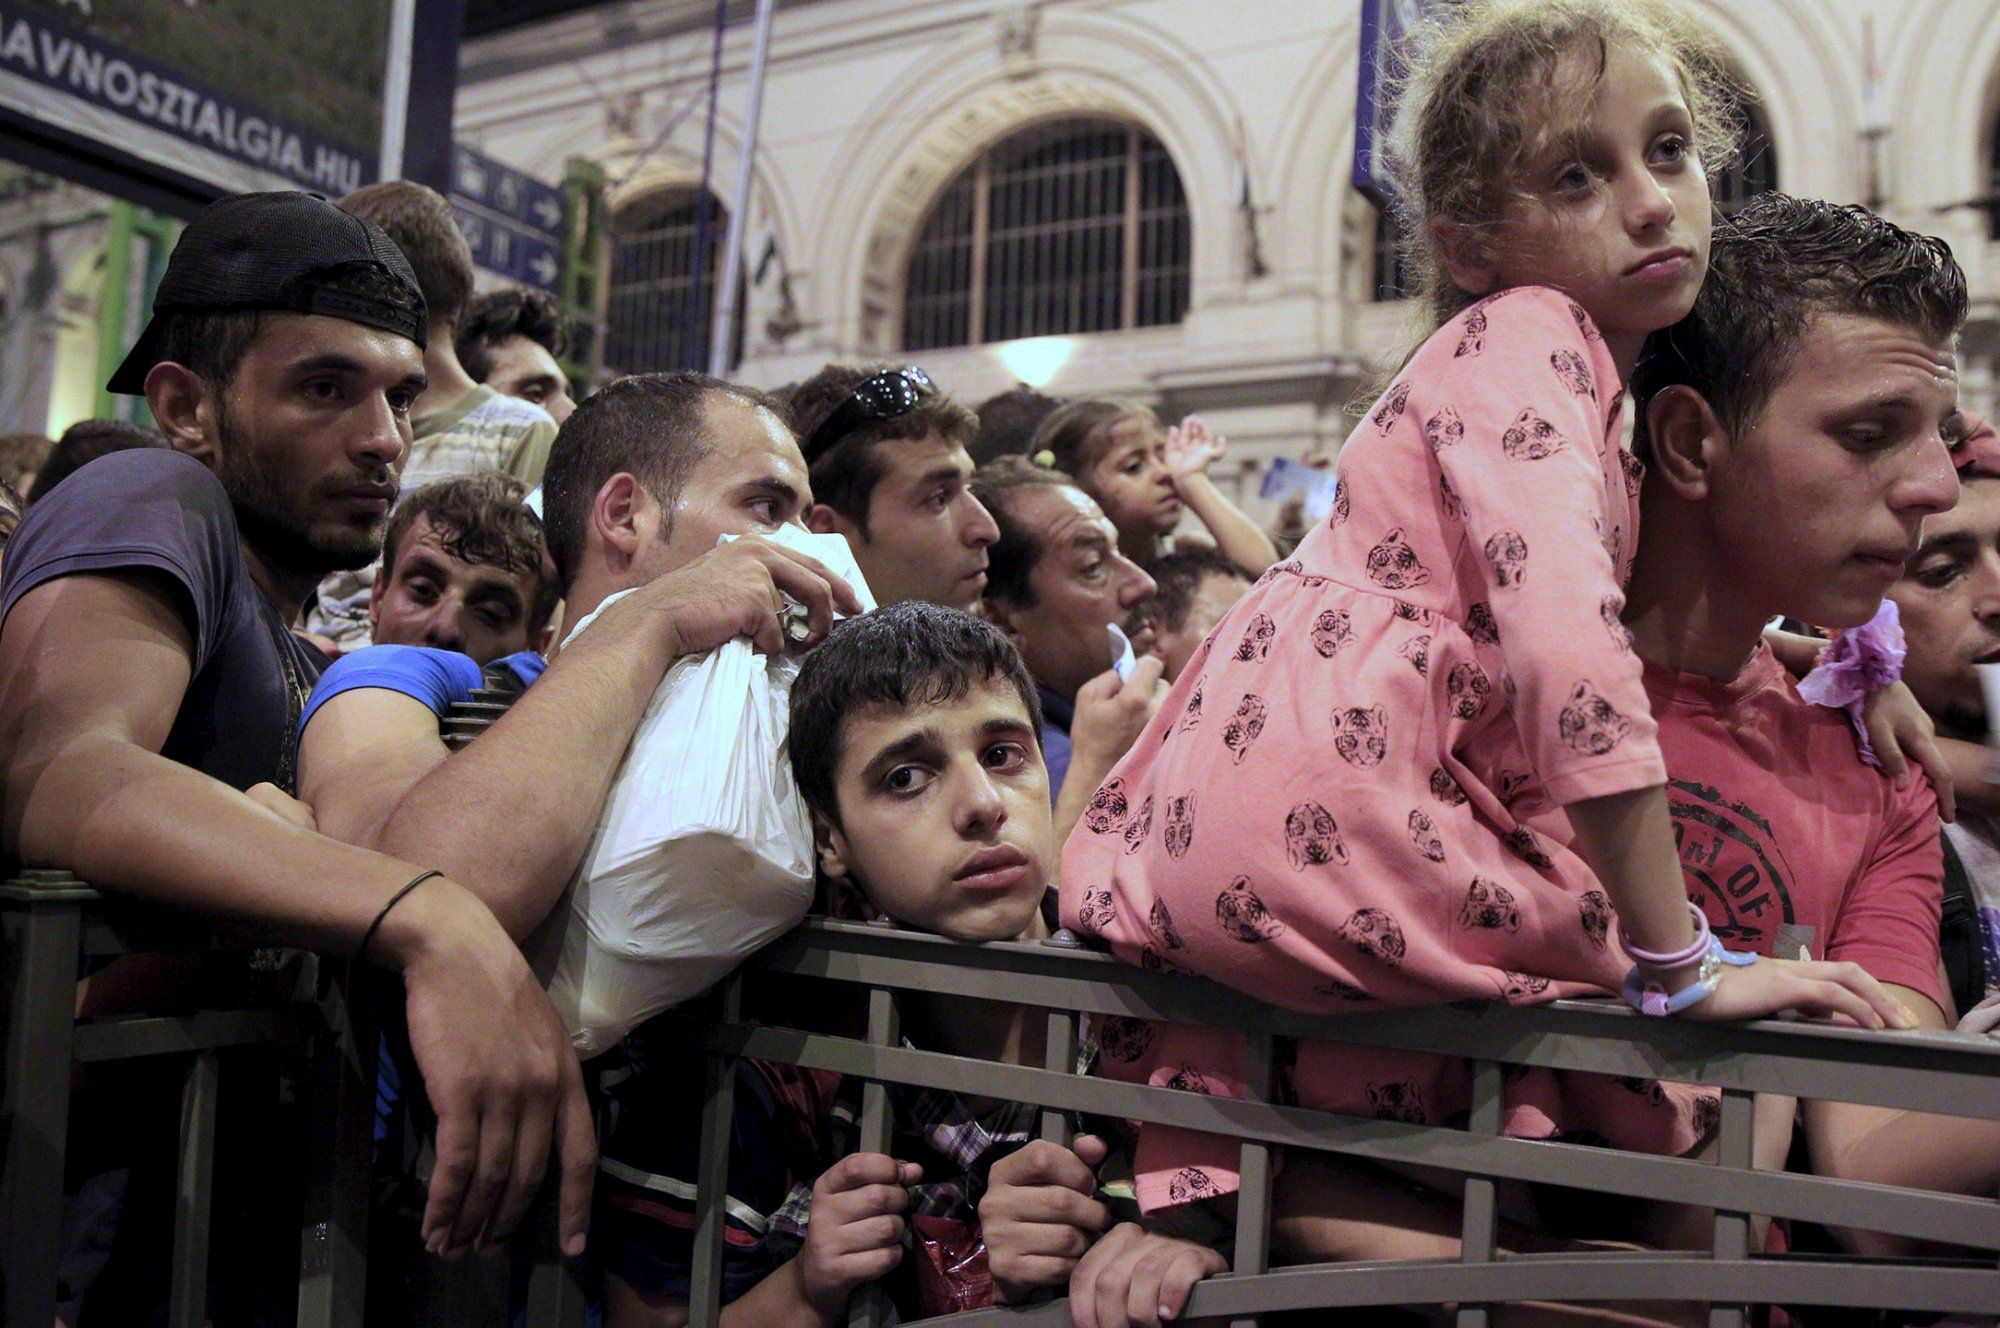 The Middle East Needs To Take Care Of Its Own Refugees Refugee Syrian Refugees Muslim Countries